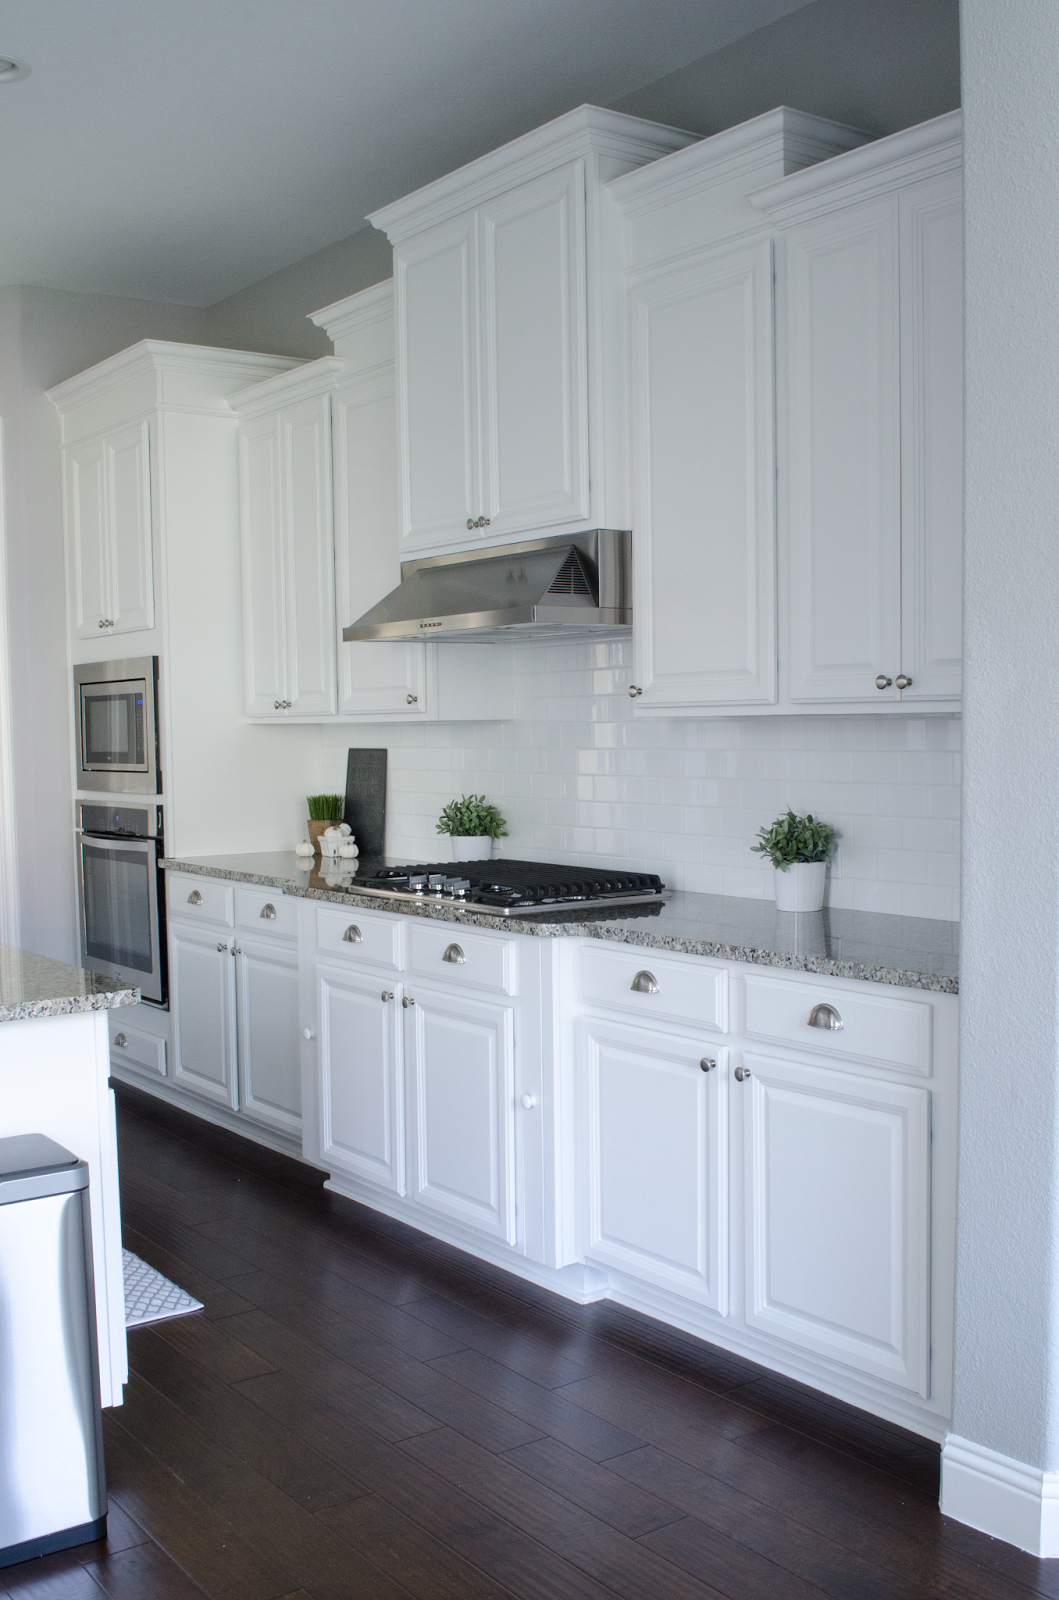 White Kitchen Cabinets Kitchen Love Pinterest White Kitchen Cabinets Kitchen And